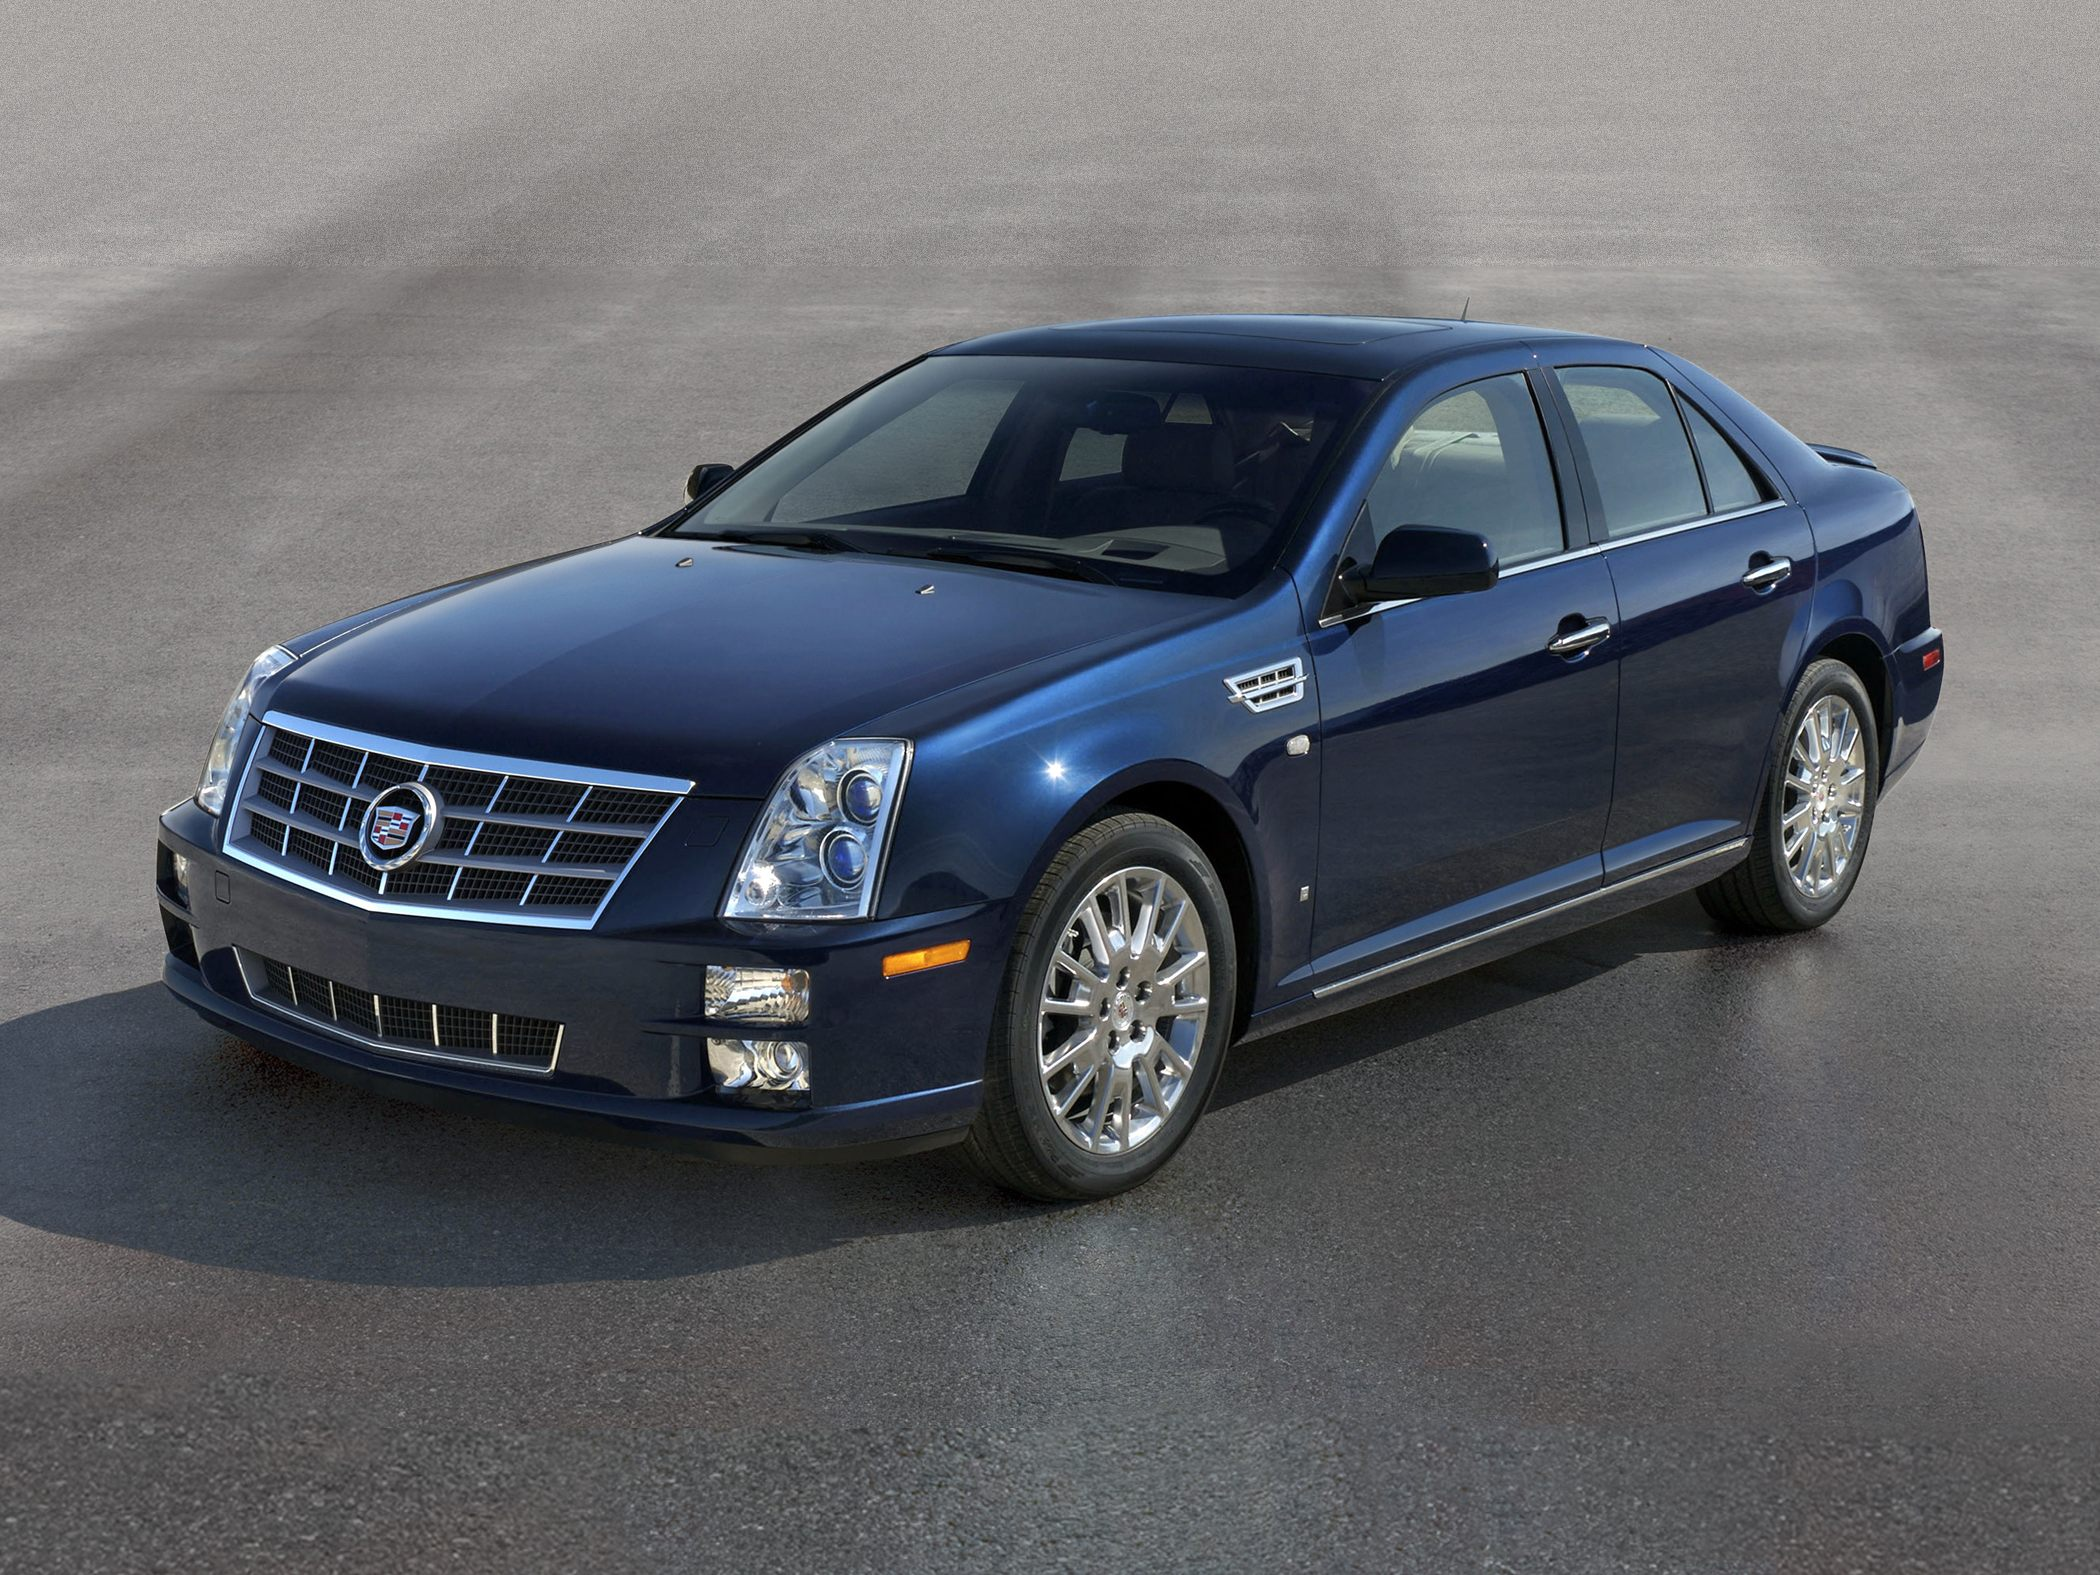 drive cars mall xle cts sts used saugus at wheel auto awd all sedan cadillac